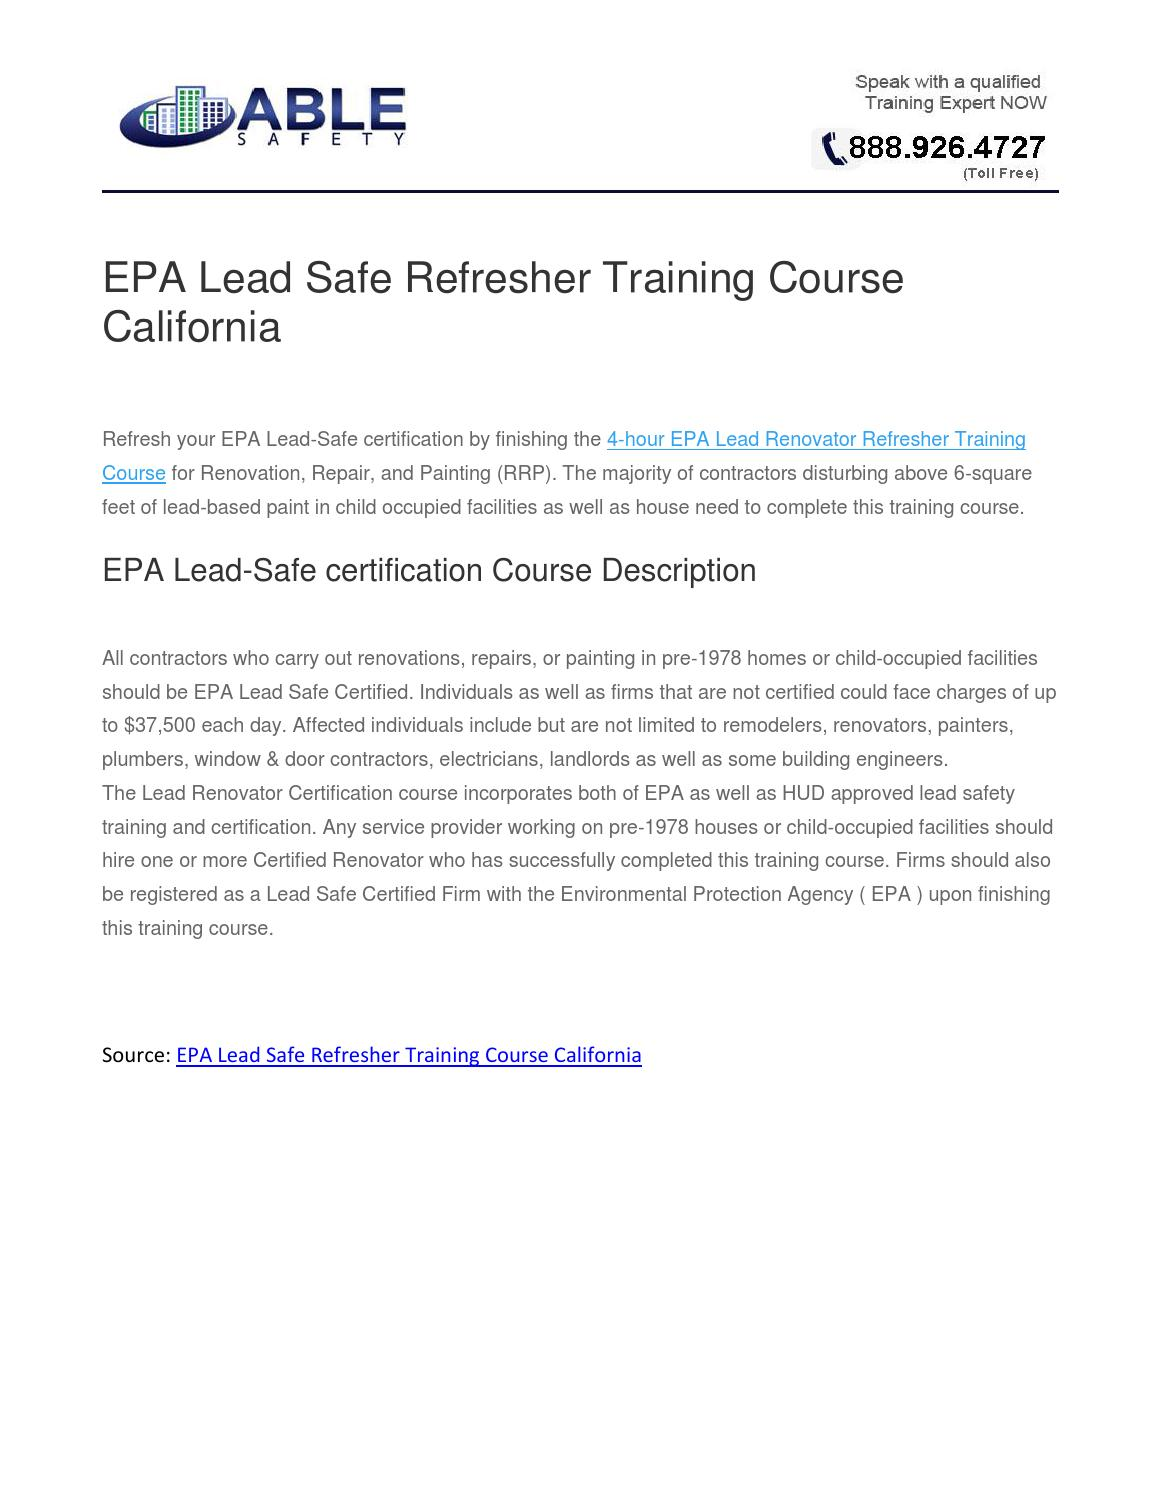 Epa Lead Safe Refresher Training Course California By John Madrigal